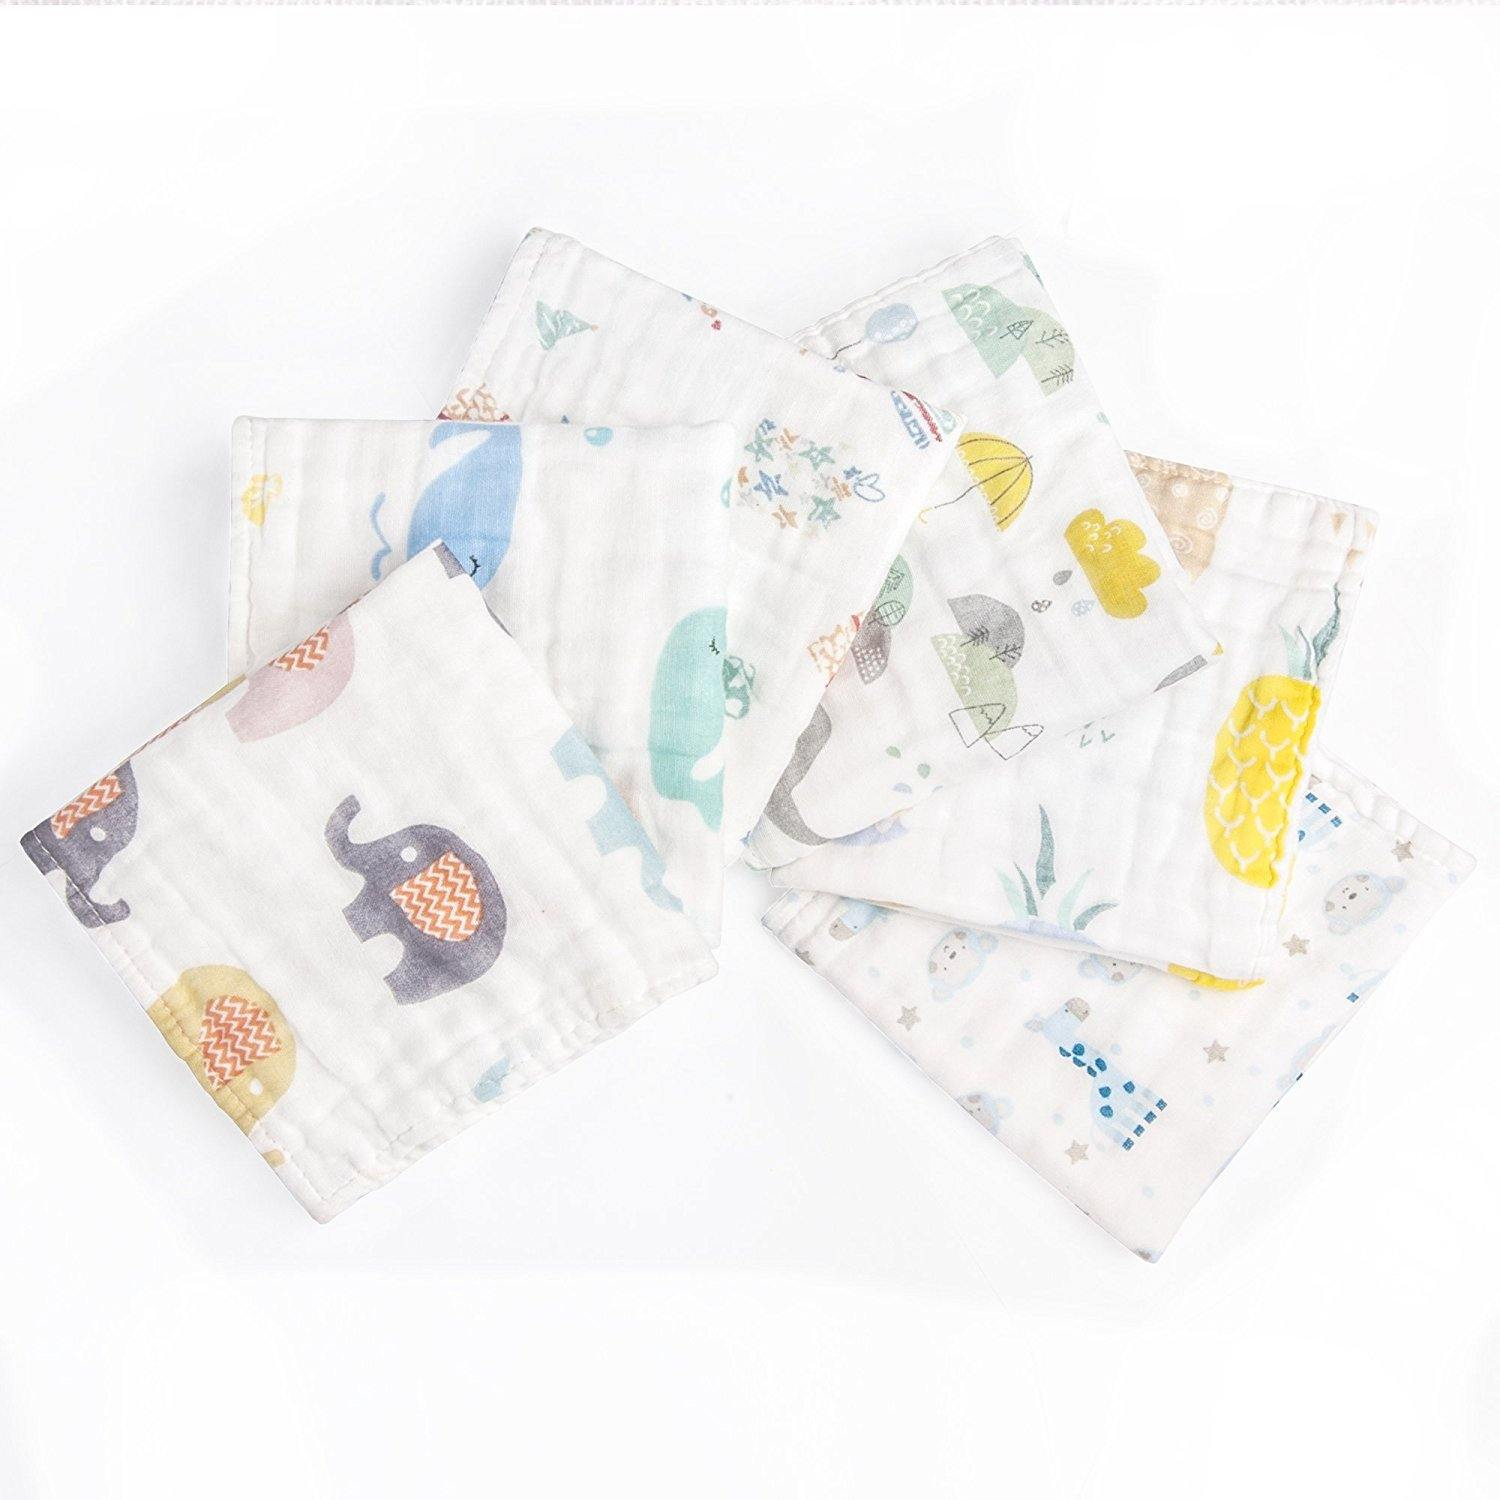 NTBAY 6 Layers of Baby Washcloths Natural Muslin Cotton with Cartoon Printed Design - NTBAY